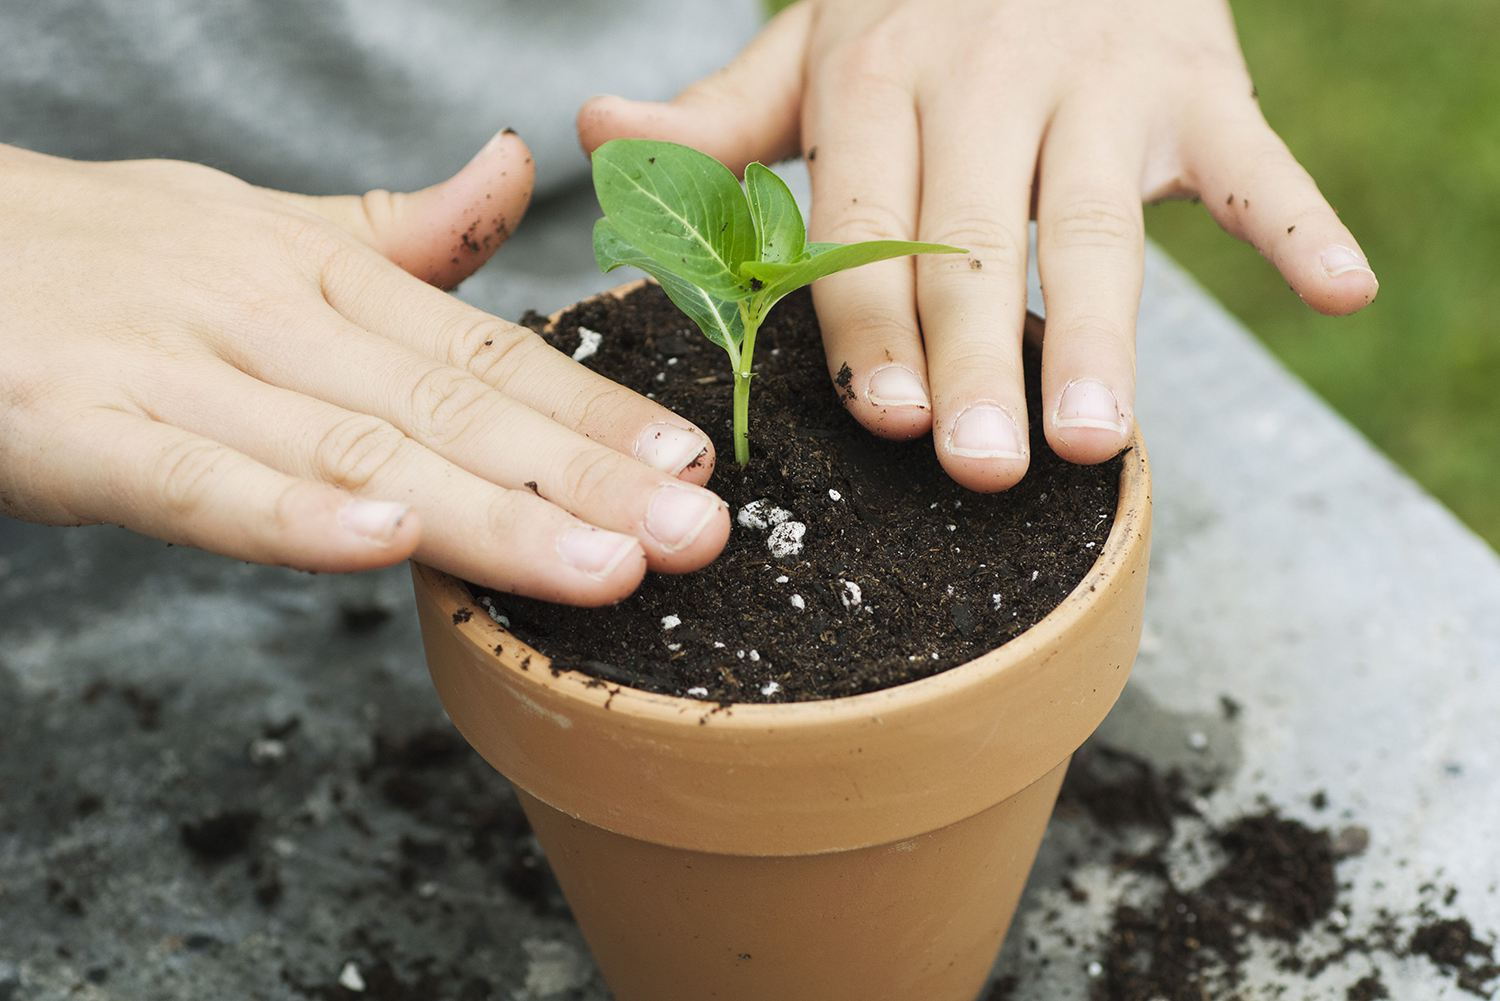 Girl Putting Plant in Pot